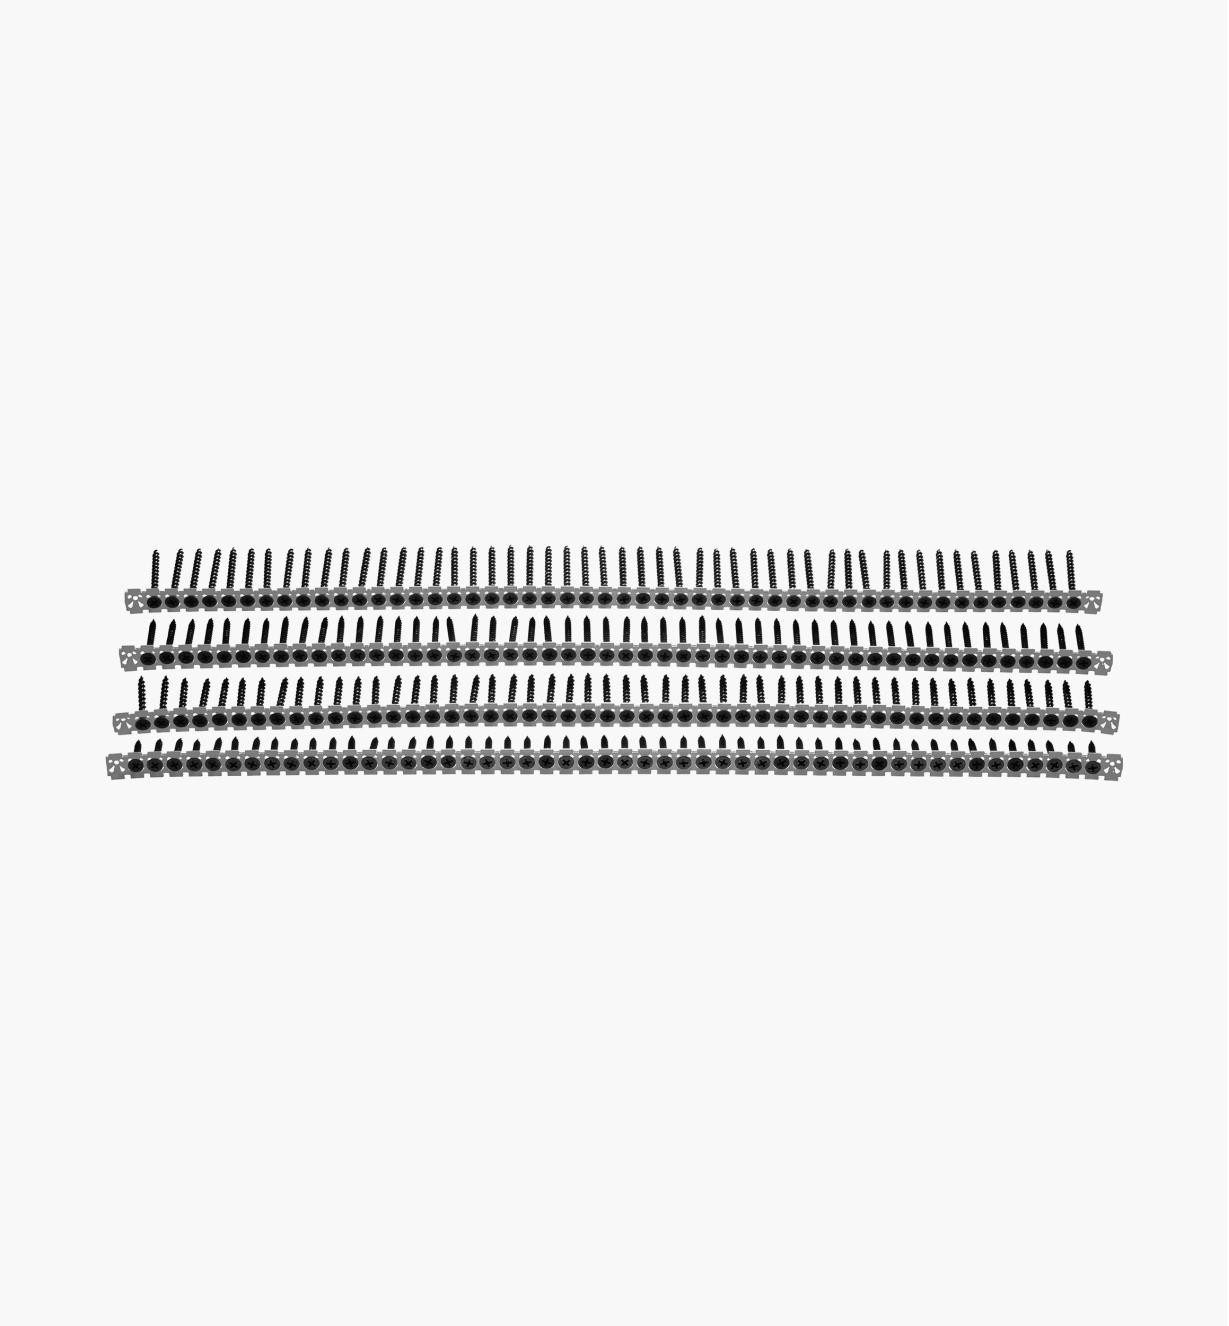 """ZA769142 - Drywall Screw FT 25mm (1""""), 1000 pieces"""